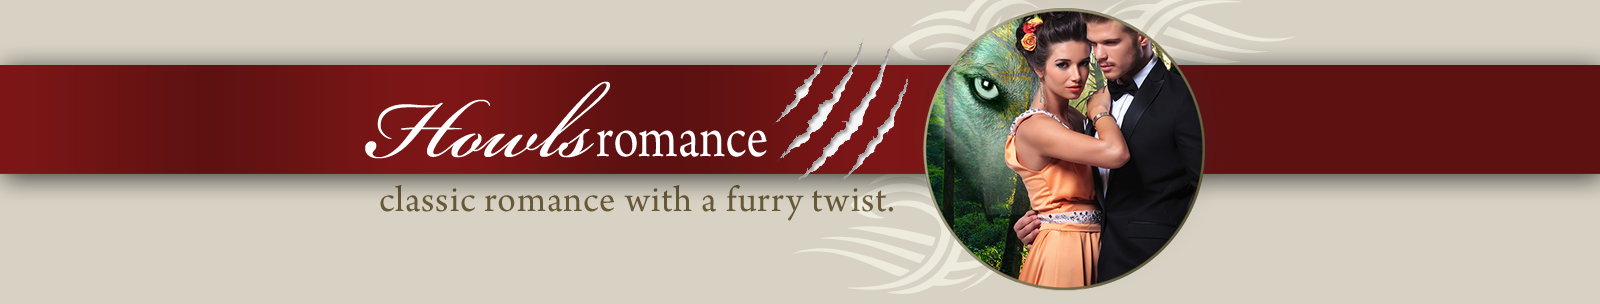 Howls Romance